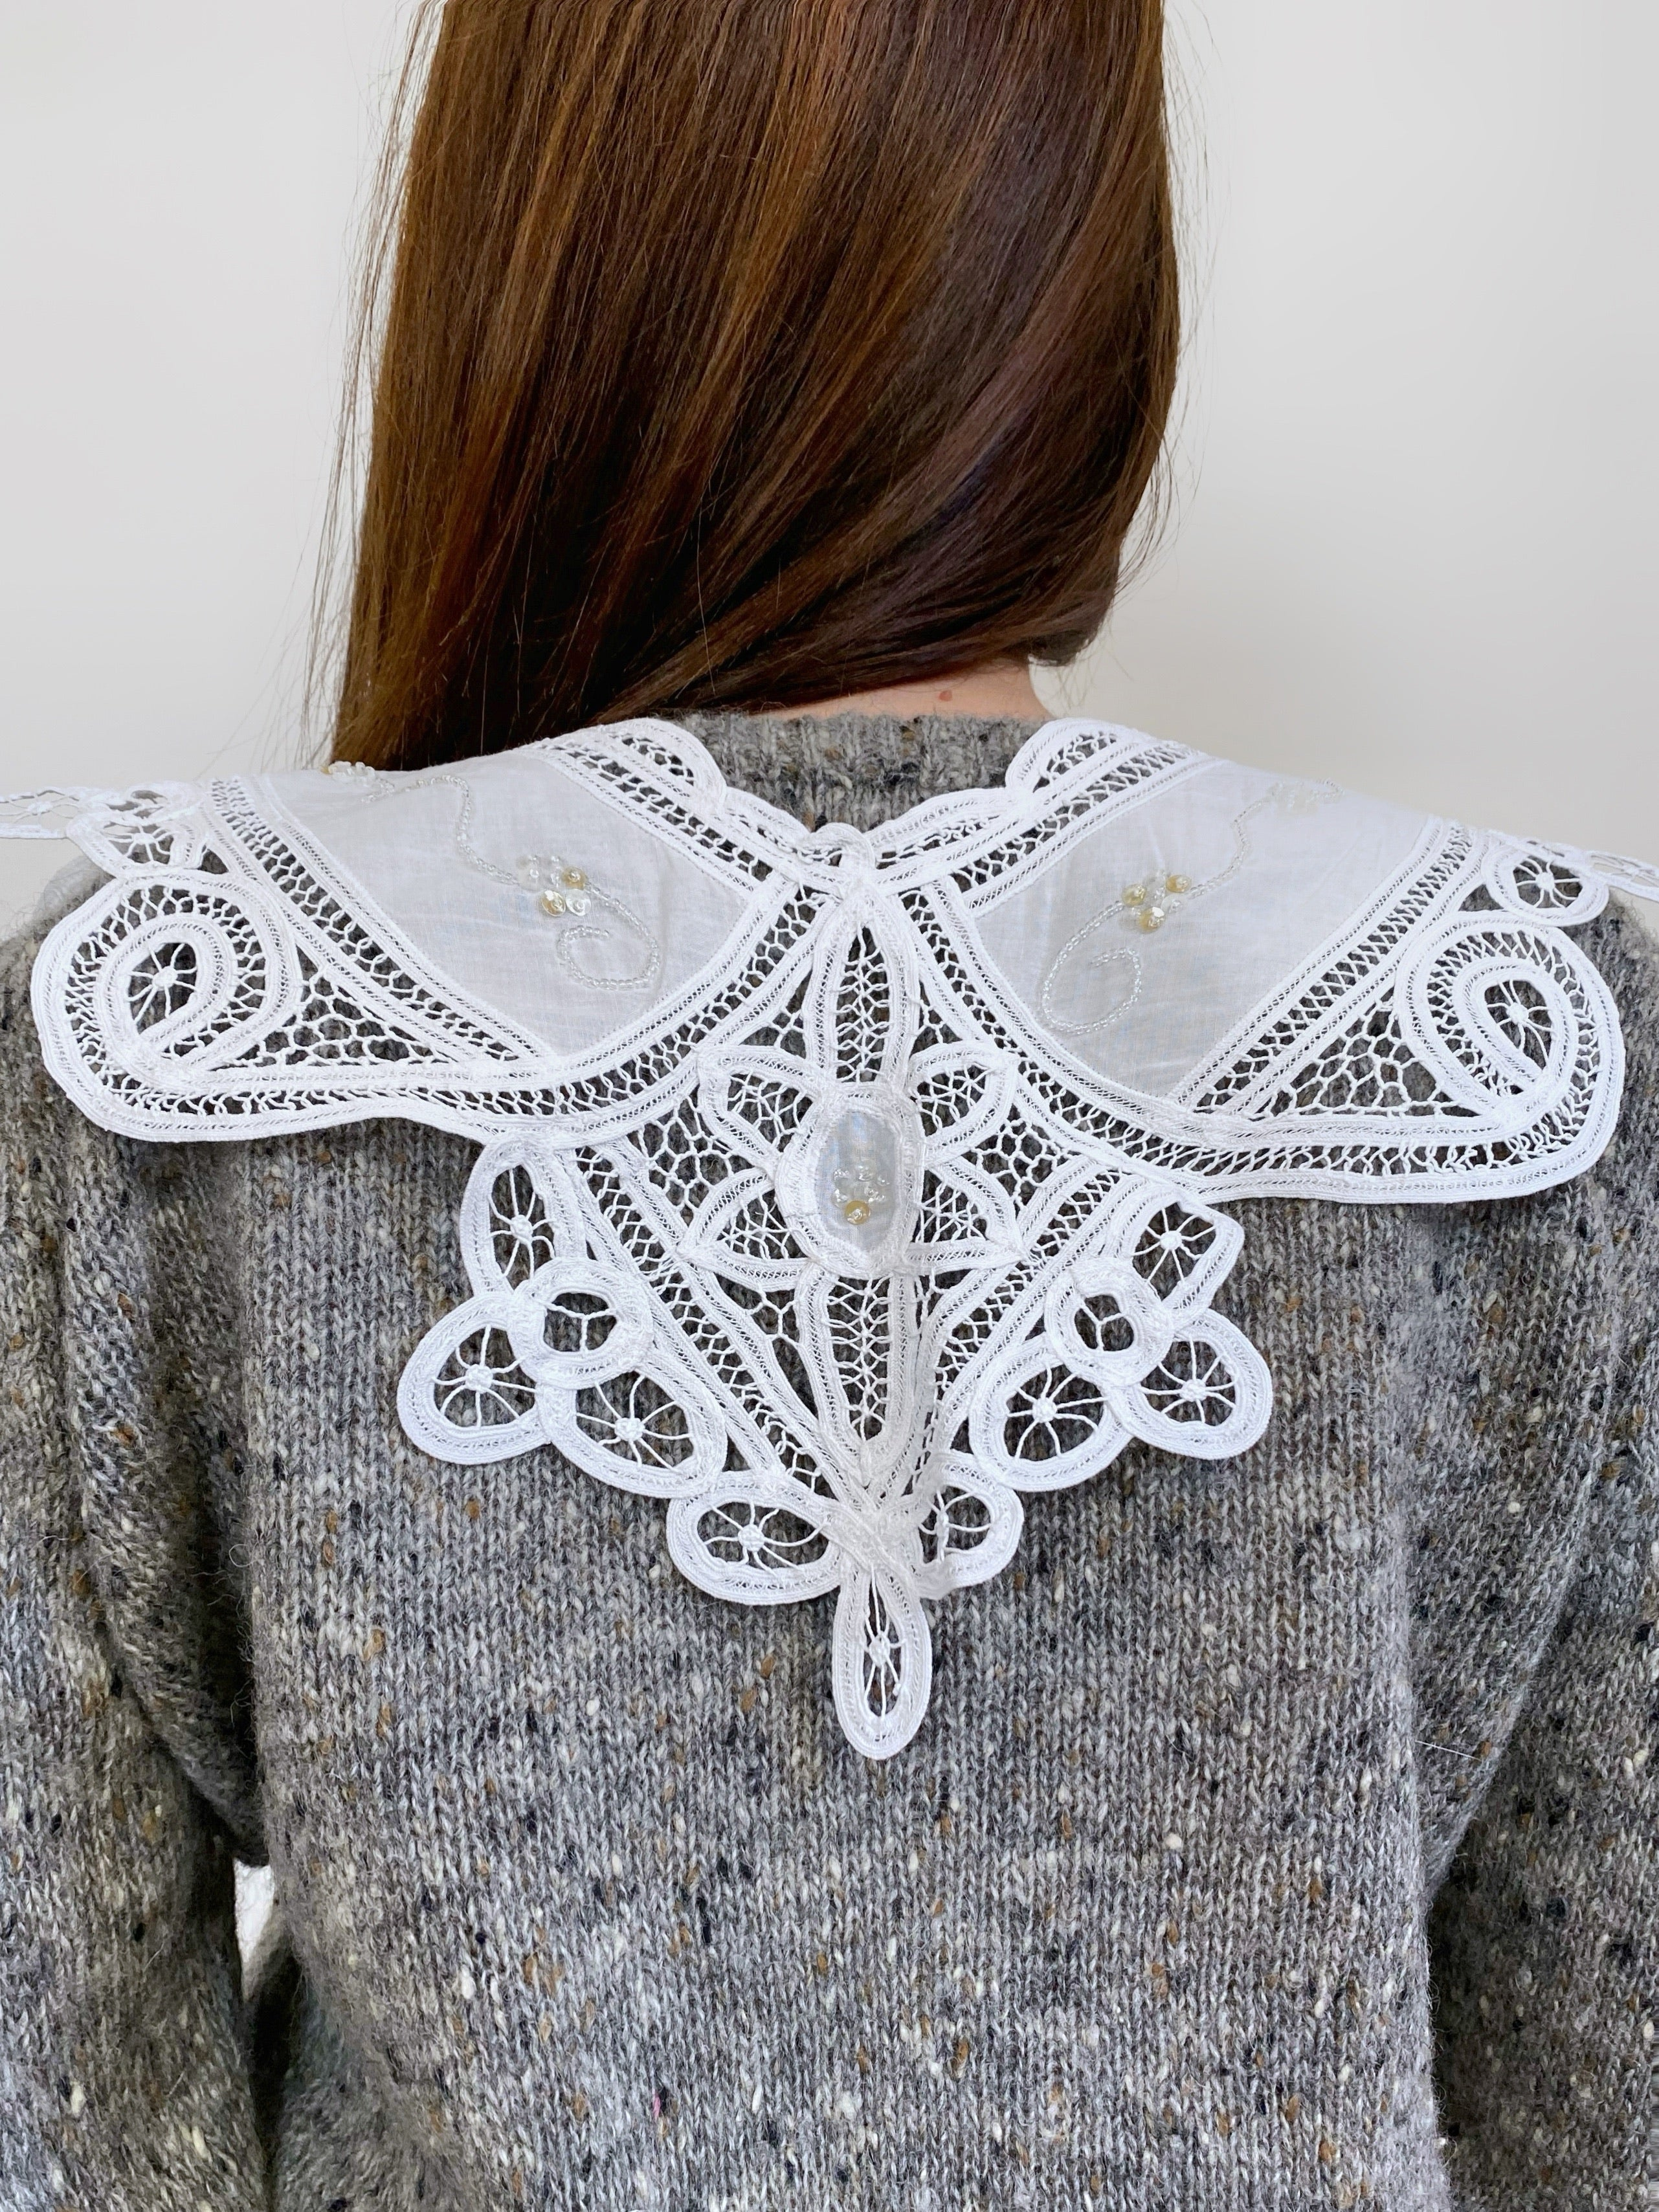 Vintage antique lace collar with beads details